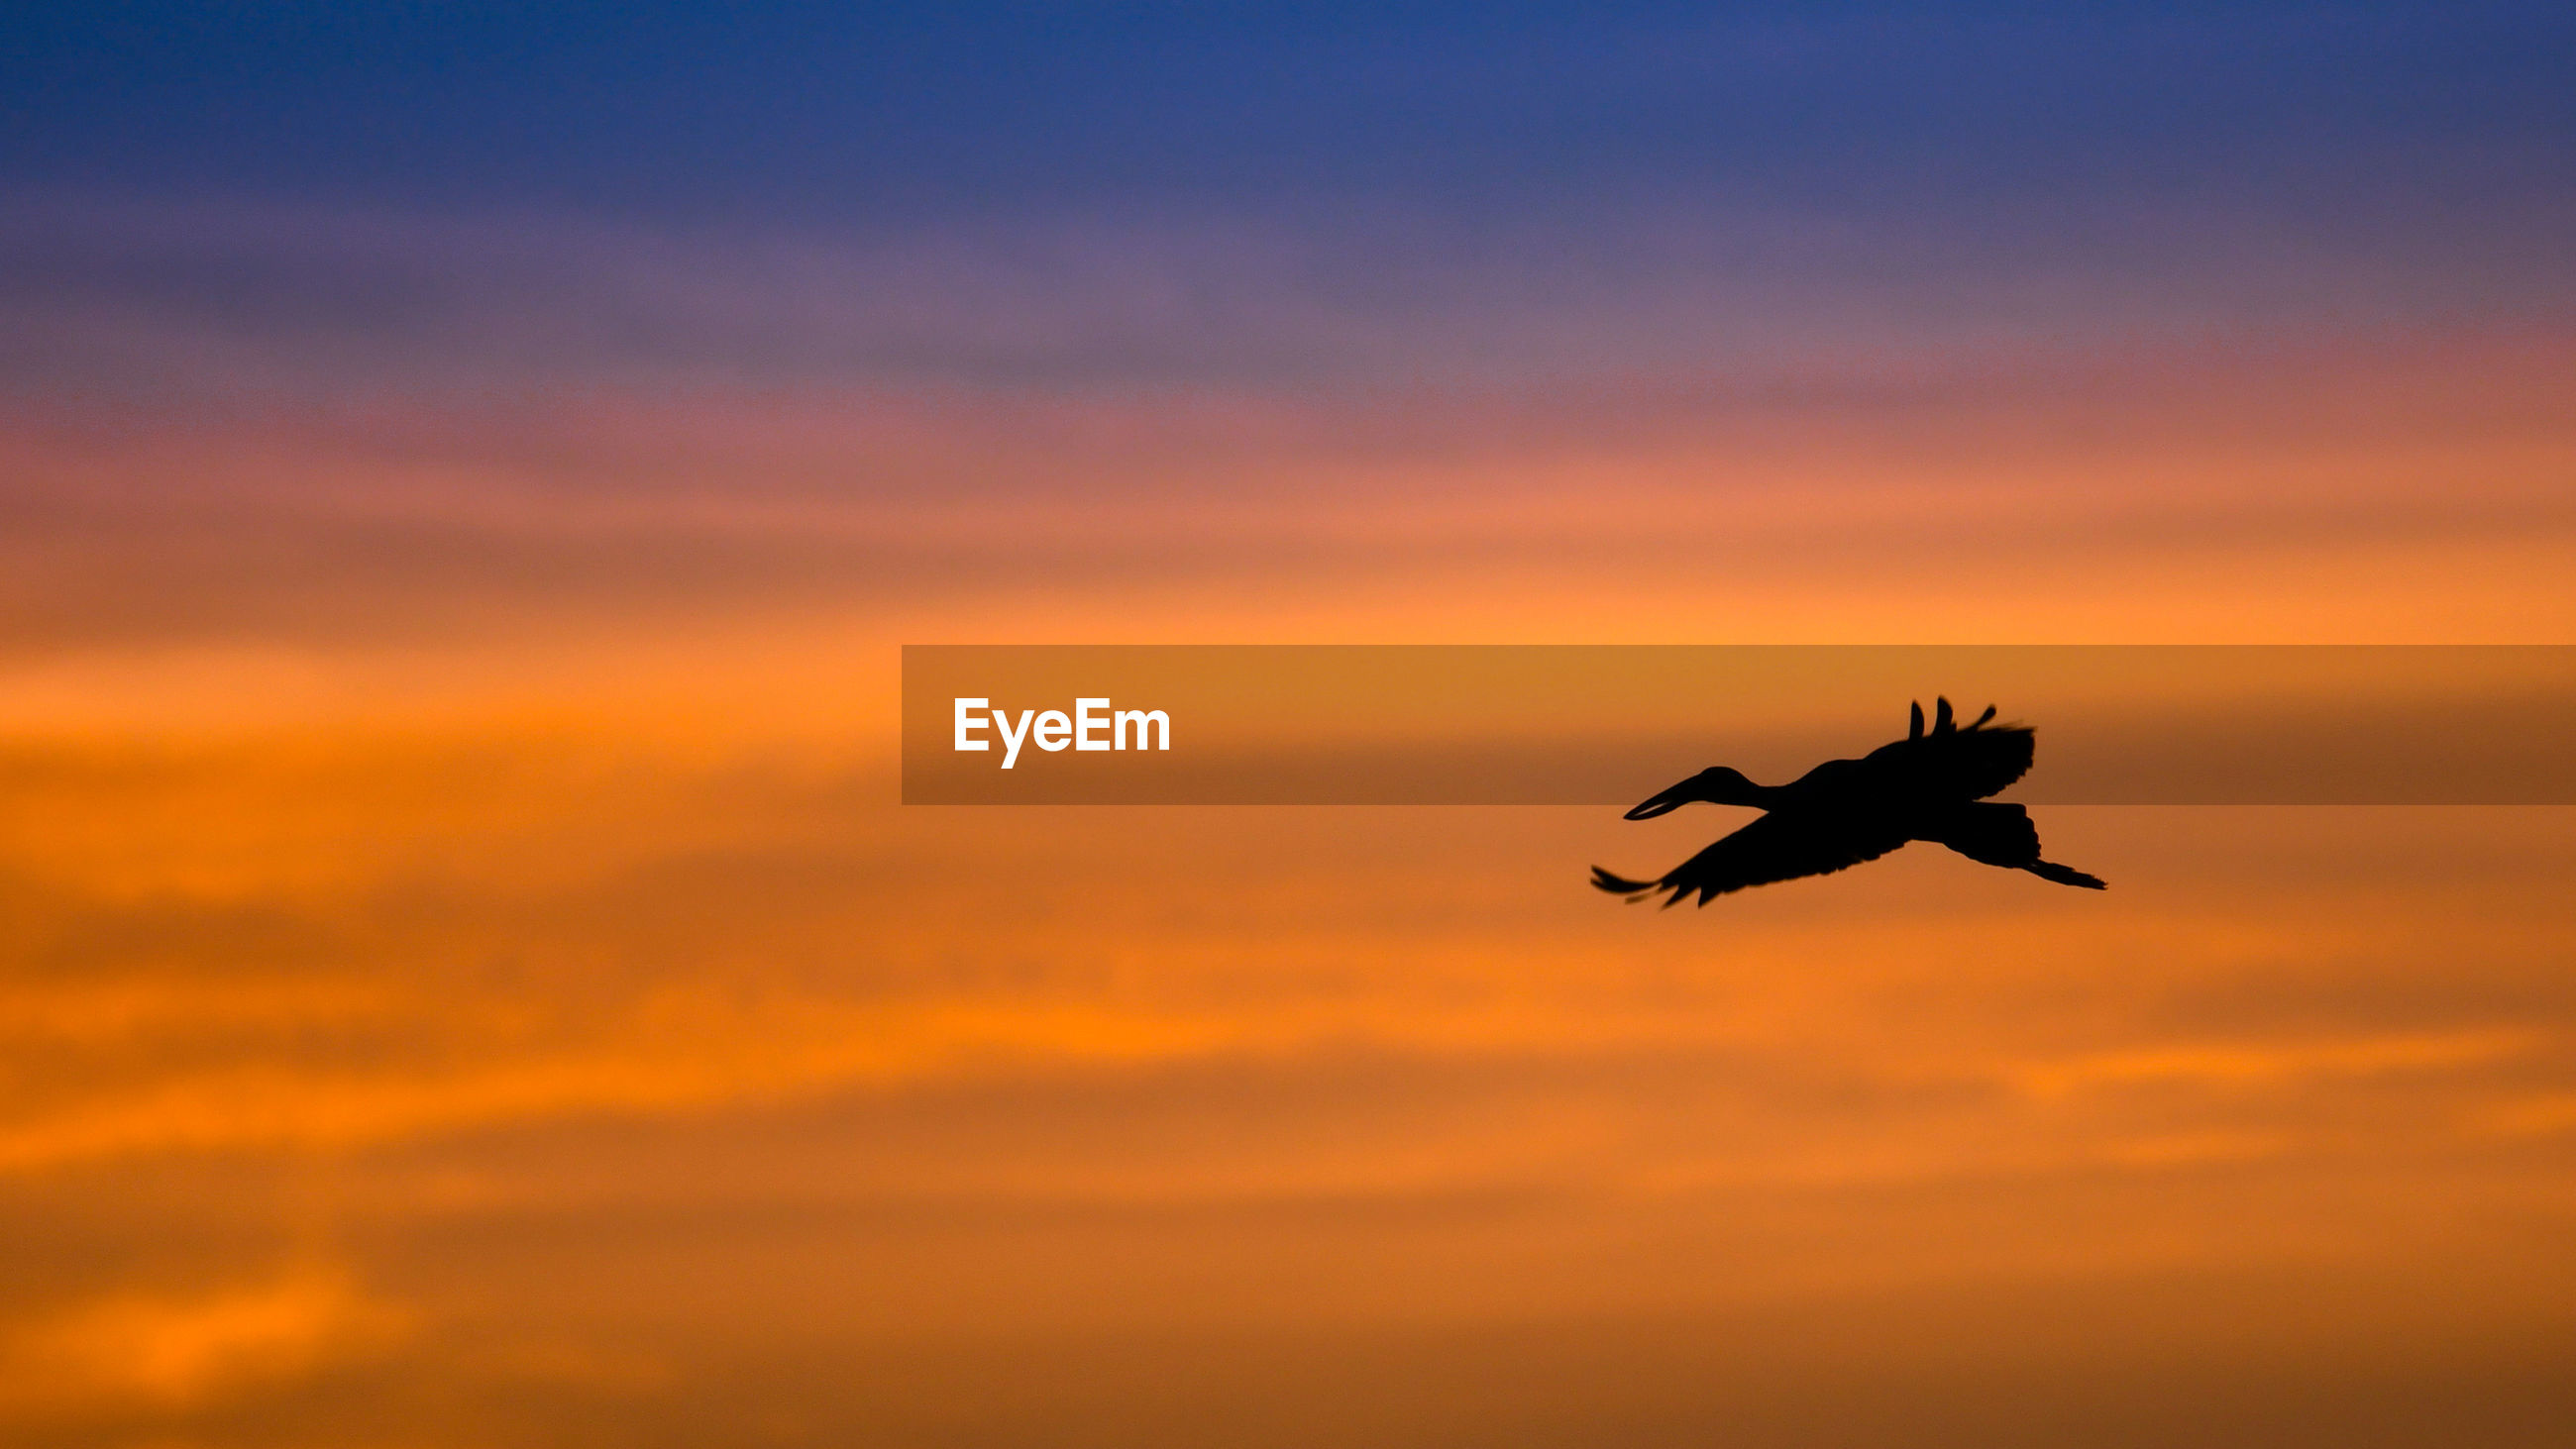 SILHOUETTE OF BIRD FLYING IN SKY